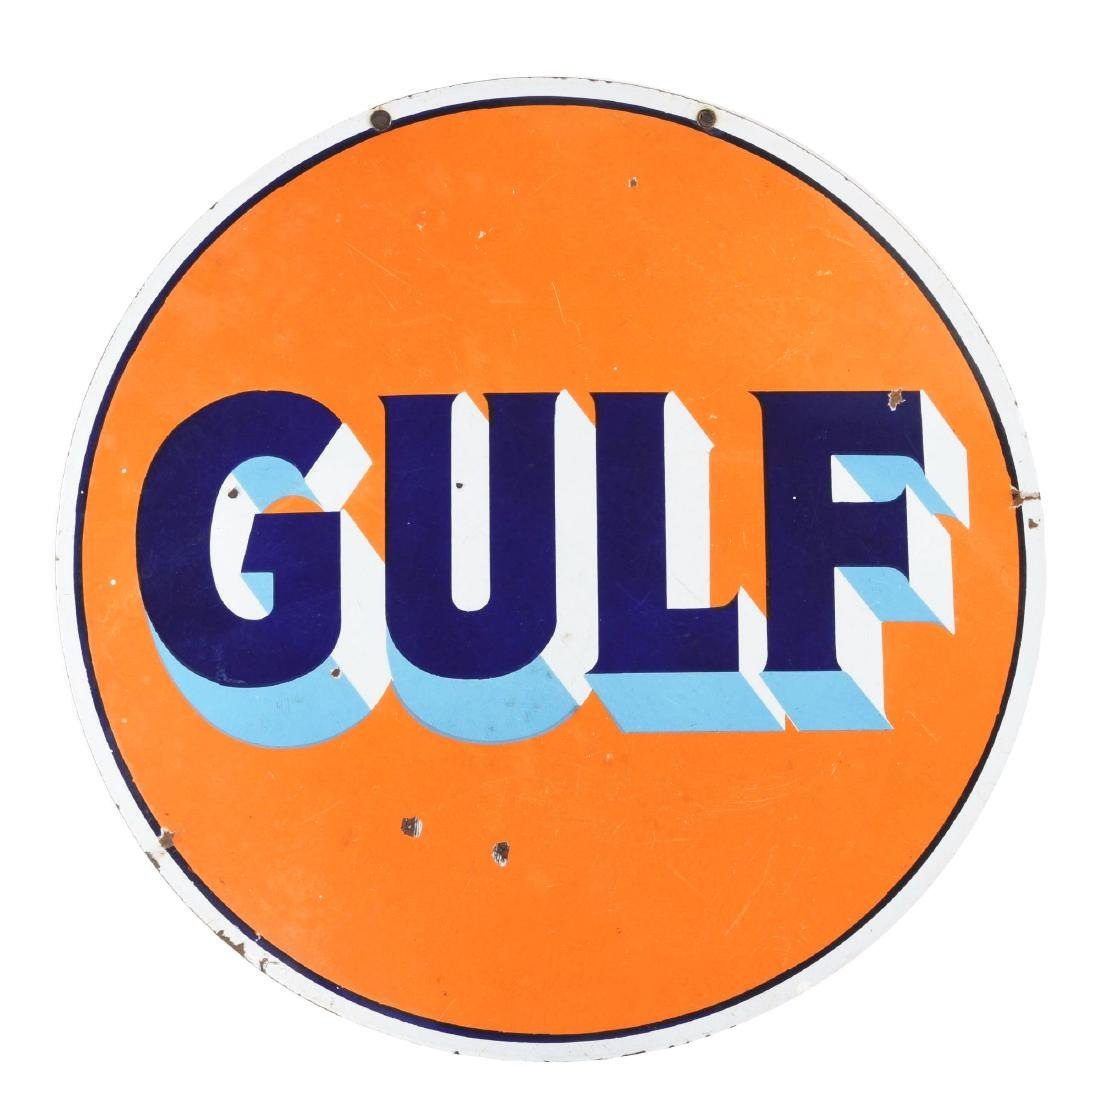 Gulf Gasoline Porcelain Curb Sign.